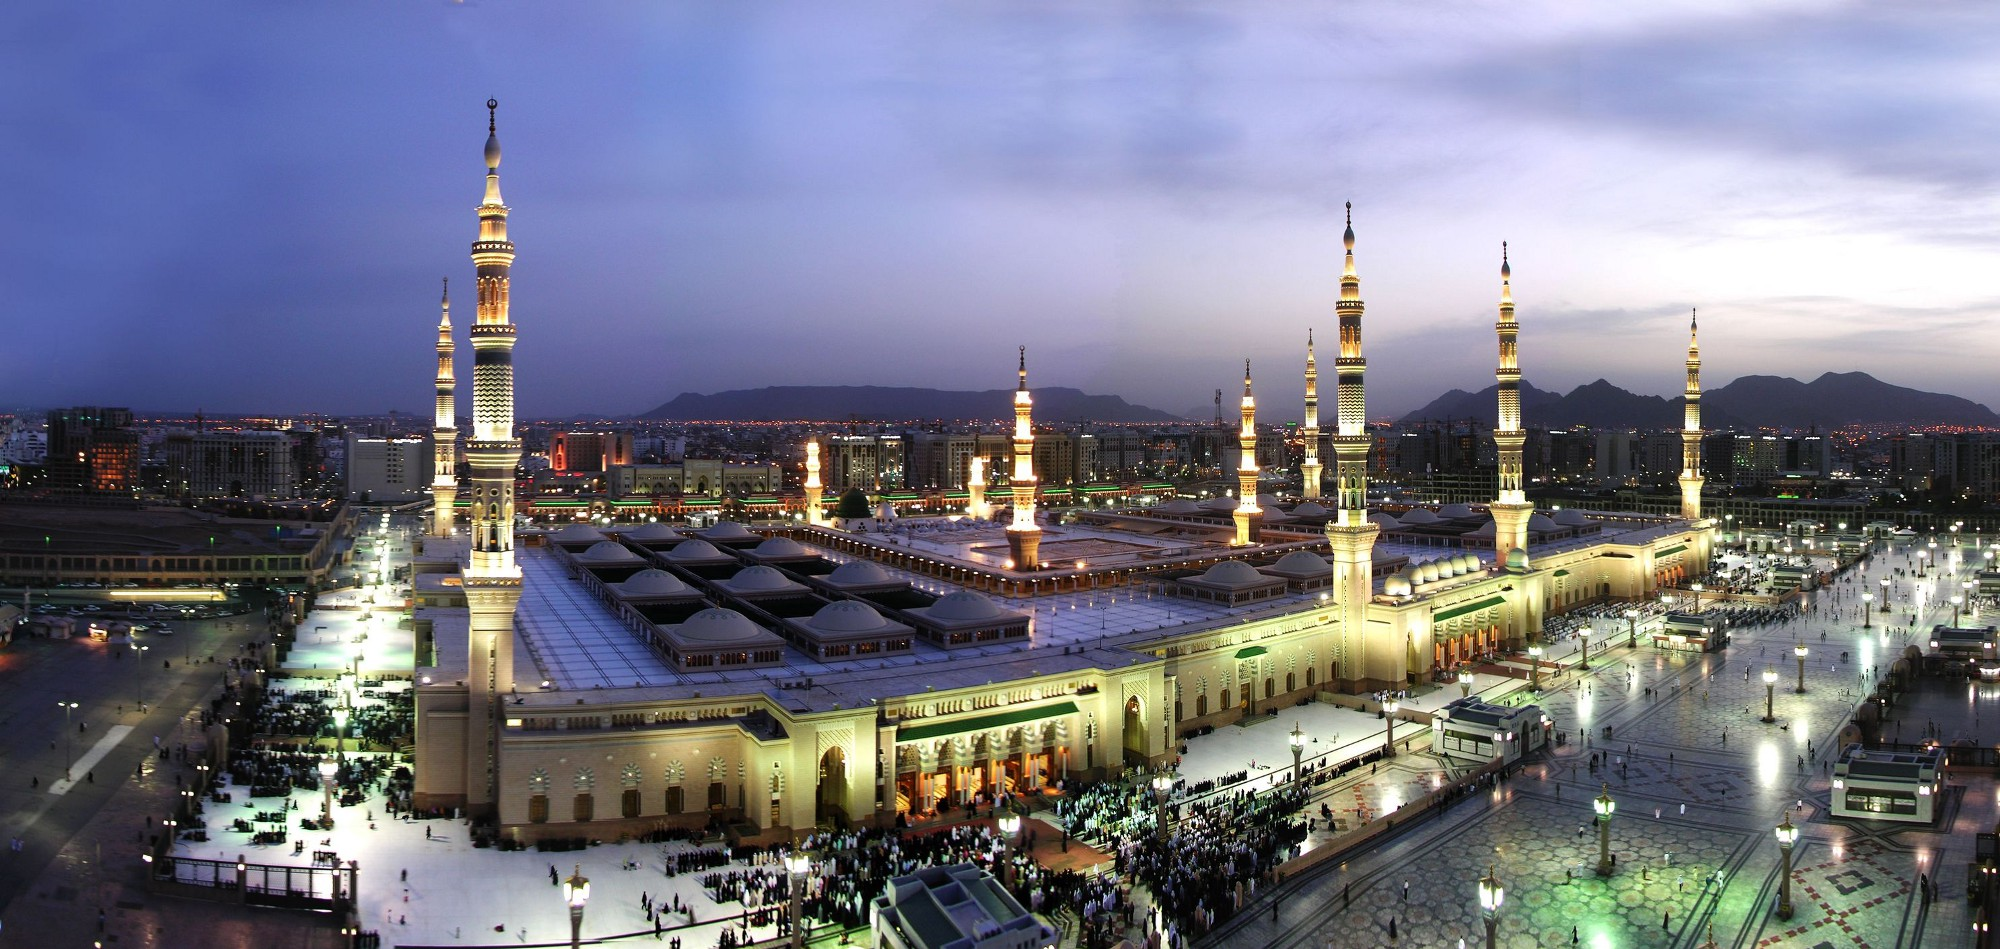 Masjid Nabawi evening aerial 3 Madinah